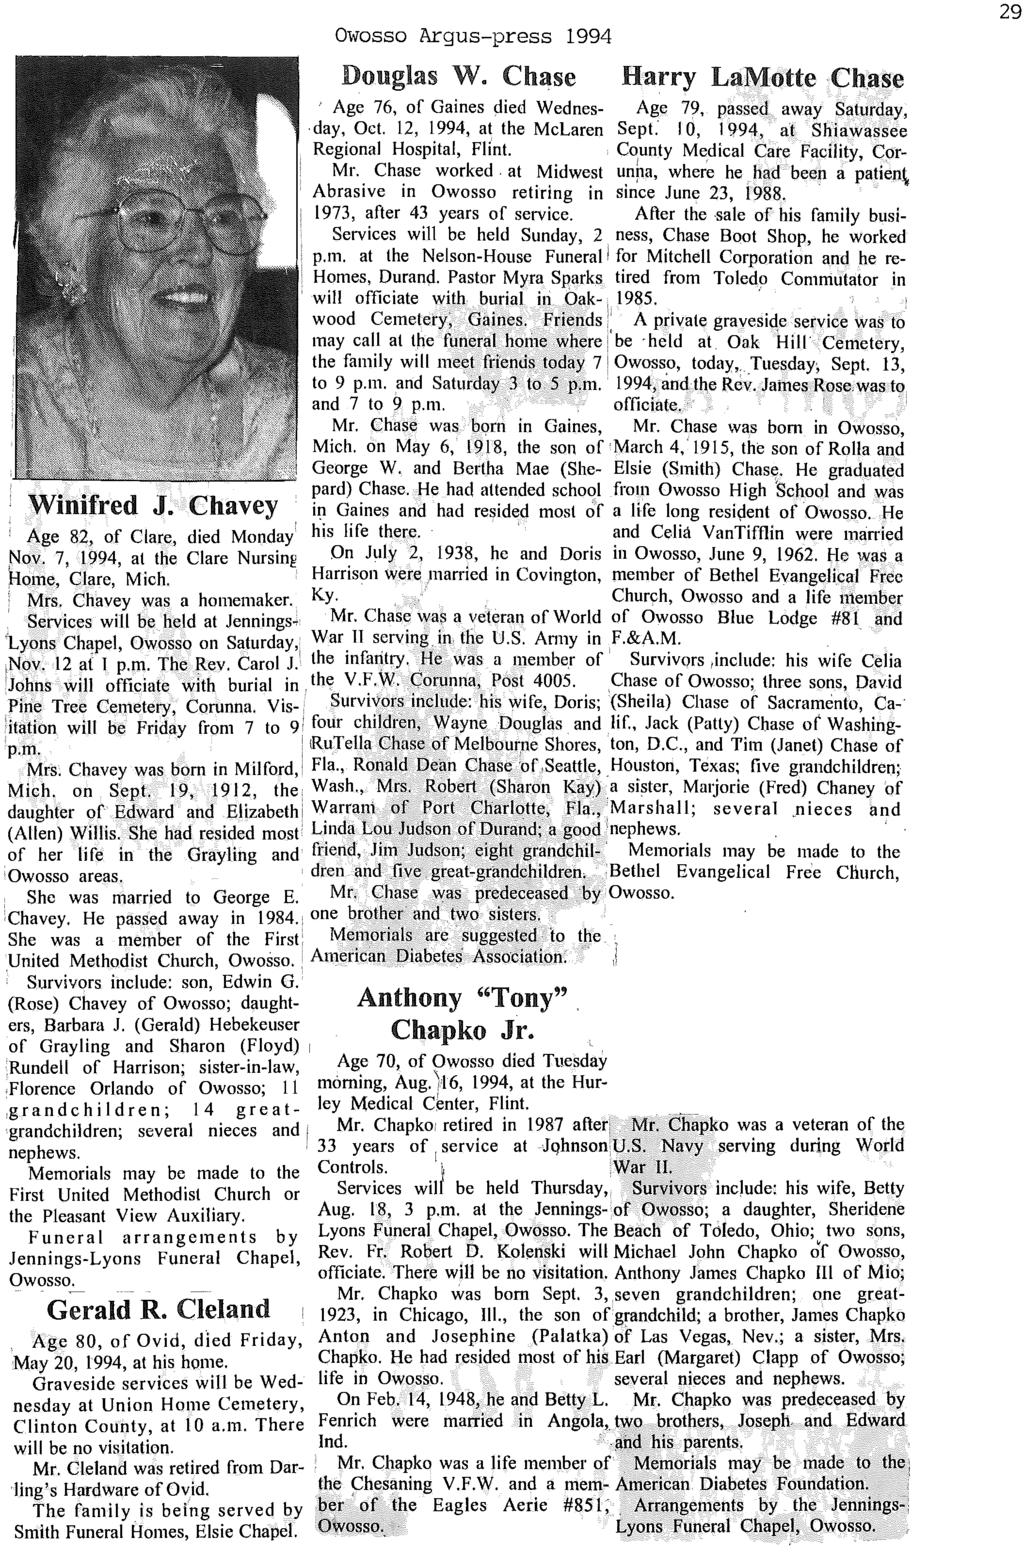 Owosso Argus-press 1994 Douglas W. Chase Harry LaMotteCh,ase Age 76, of Gaines died Wednes- Age 79, passed away Saturday, day, Oct. 12, 1994,at the McLaren Sept.